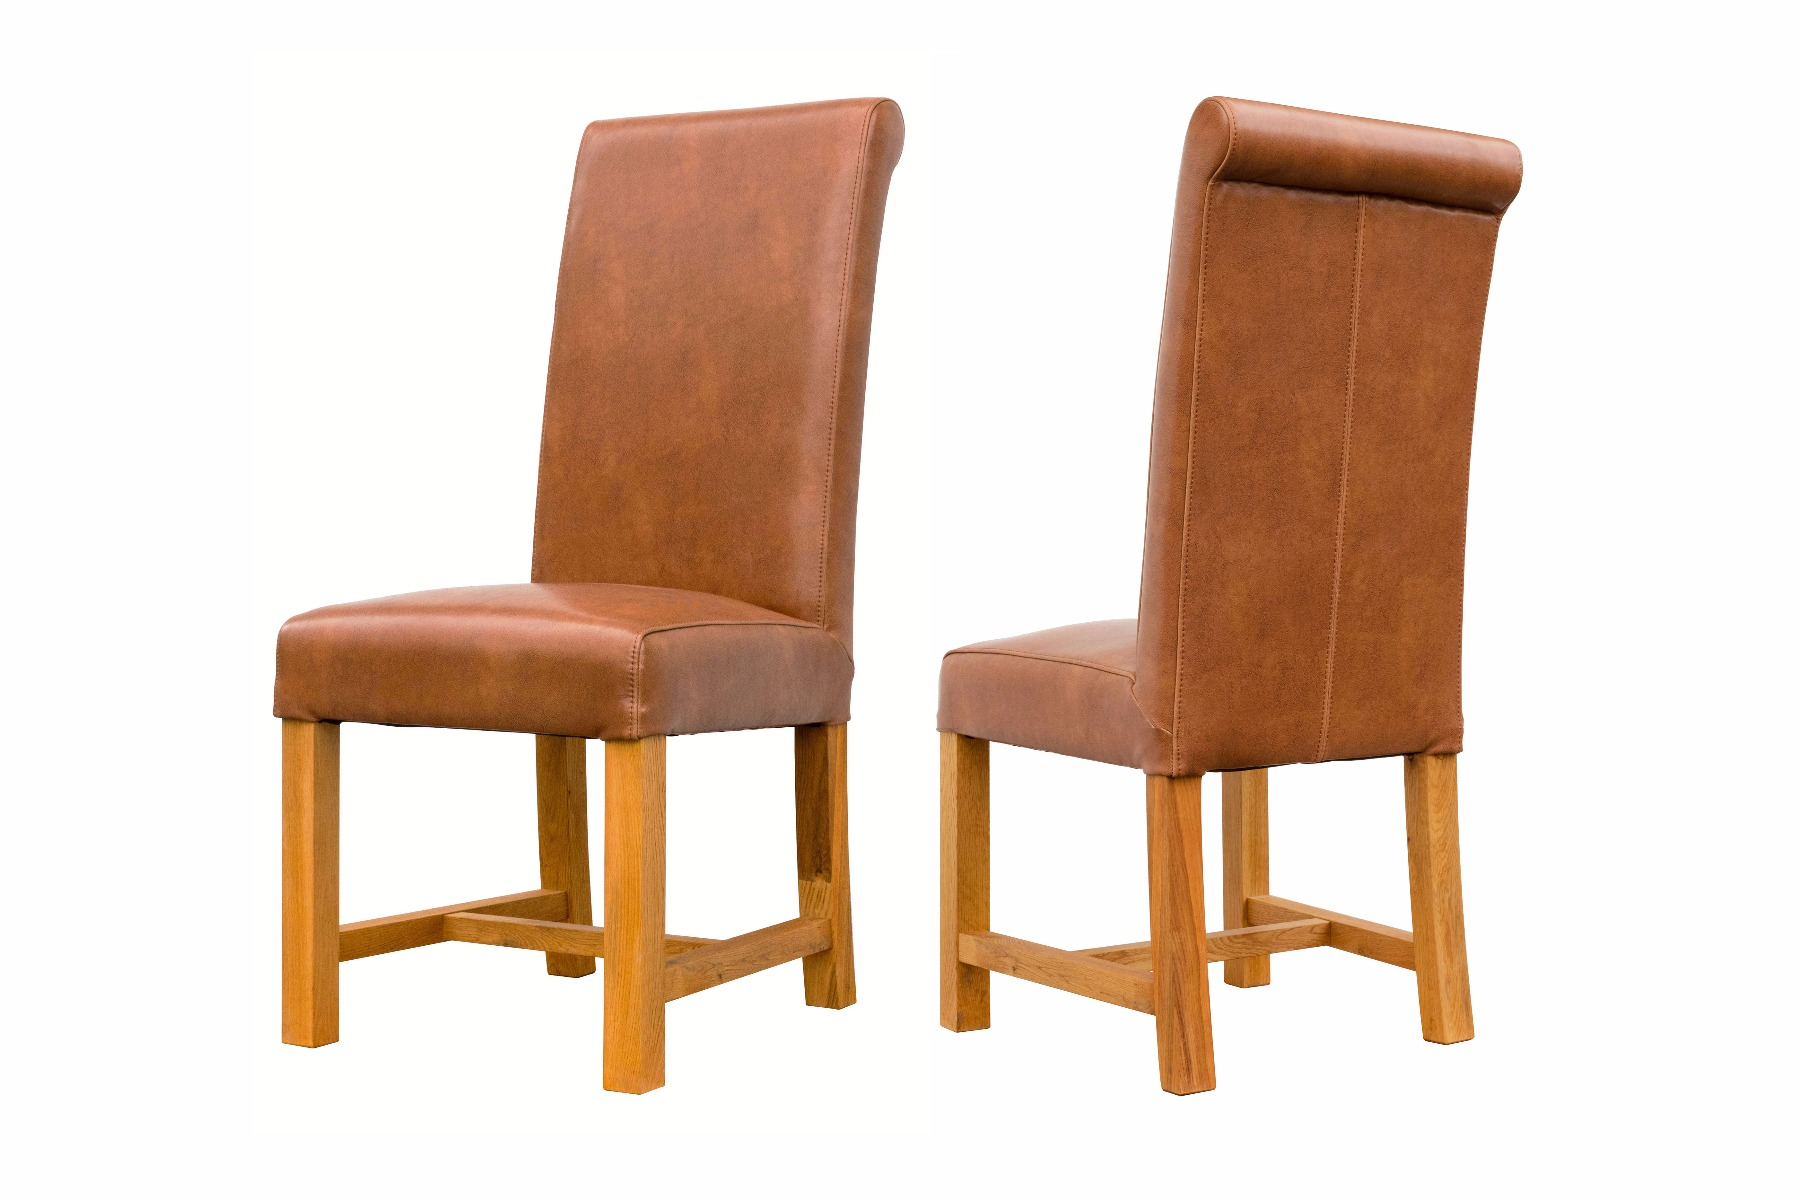 Oak Dining Chairs with Leather Cover